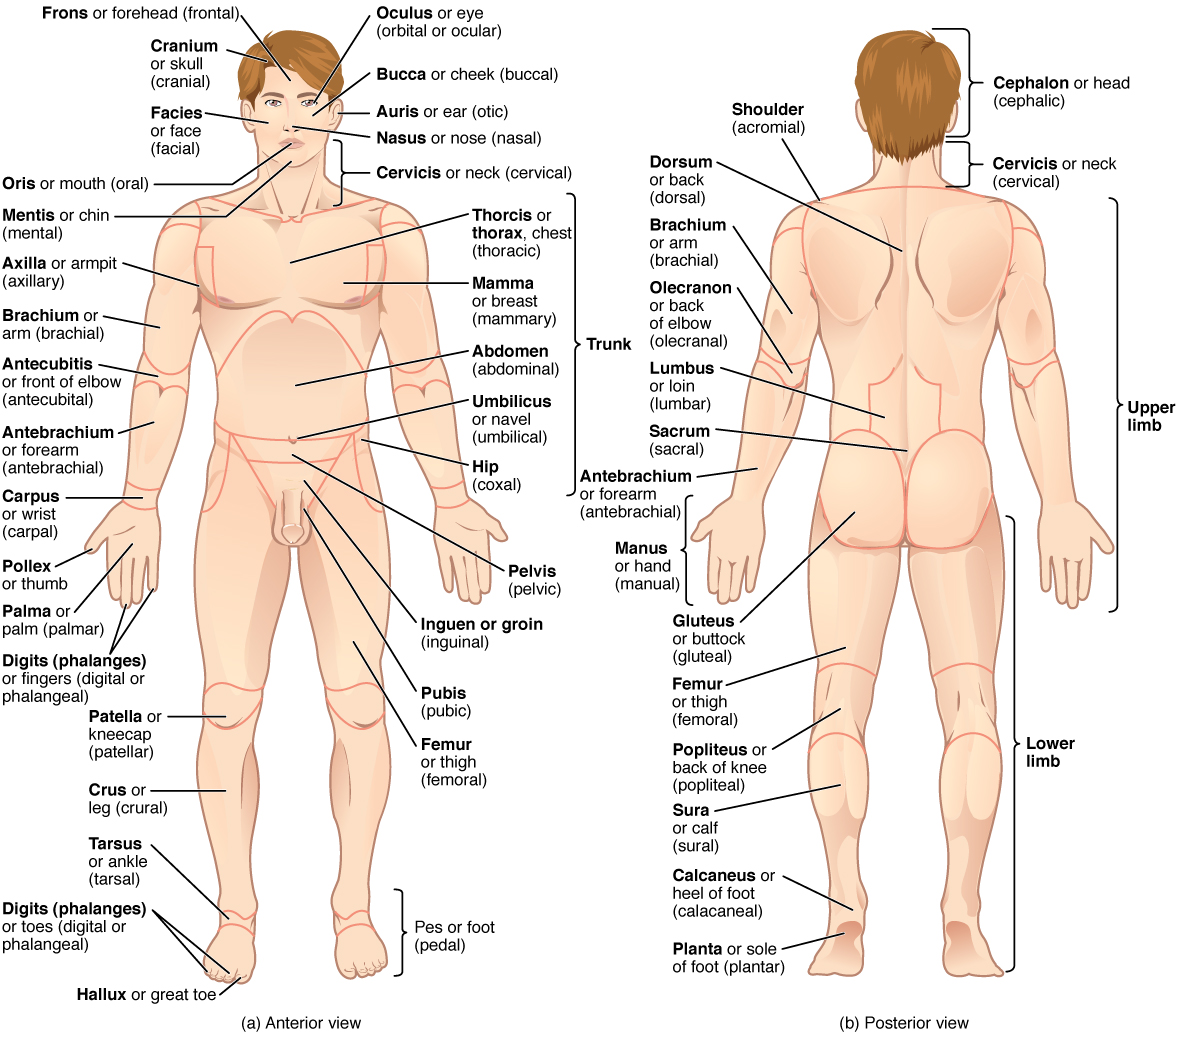 worksheet The Human Body An Orientation Worksheet Answers anatomical terminology anatomy and physiology i this illustration shows an anterior posterior view of the human body cranial region